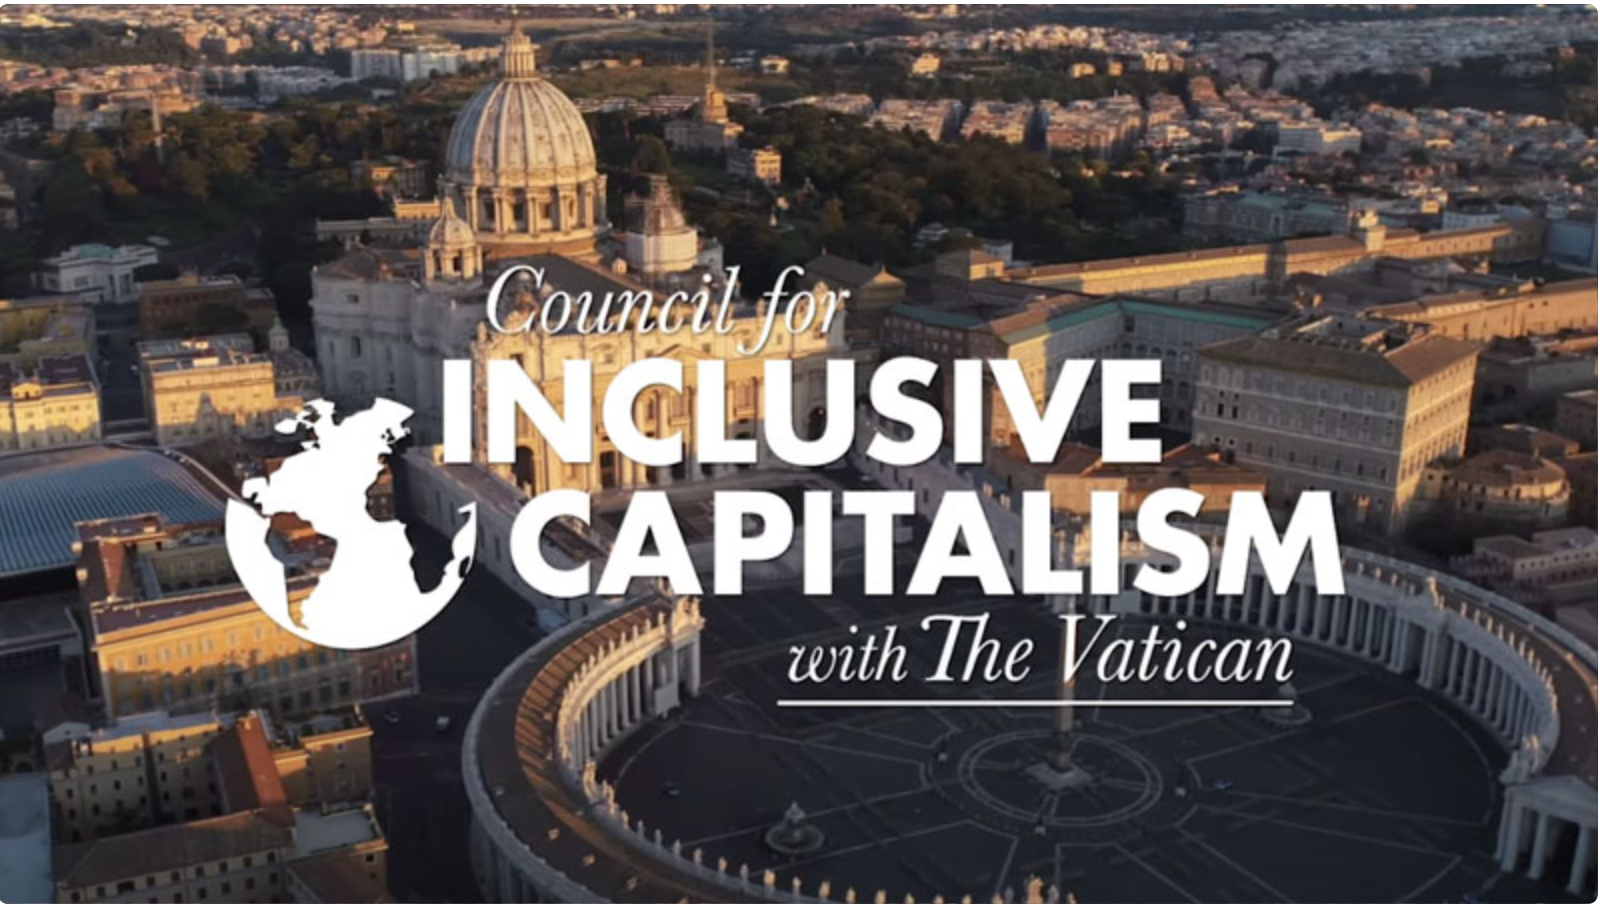 """Картинки по запросу """"The Great Reboot: Vatican Alliance With The Rothschilds, The Rockefeller Foundation And Major Banks"""""""